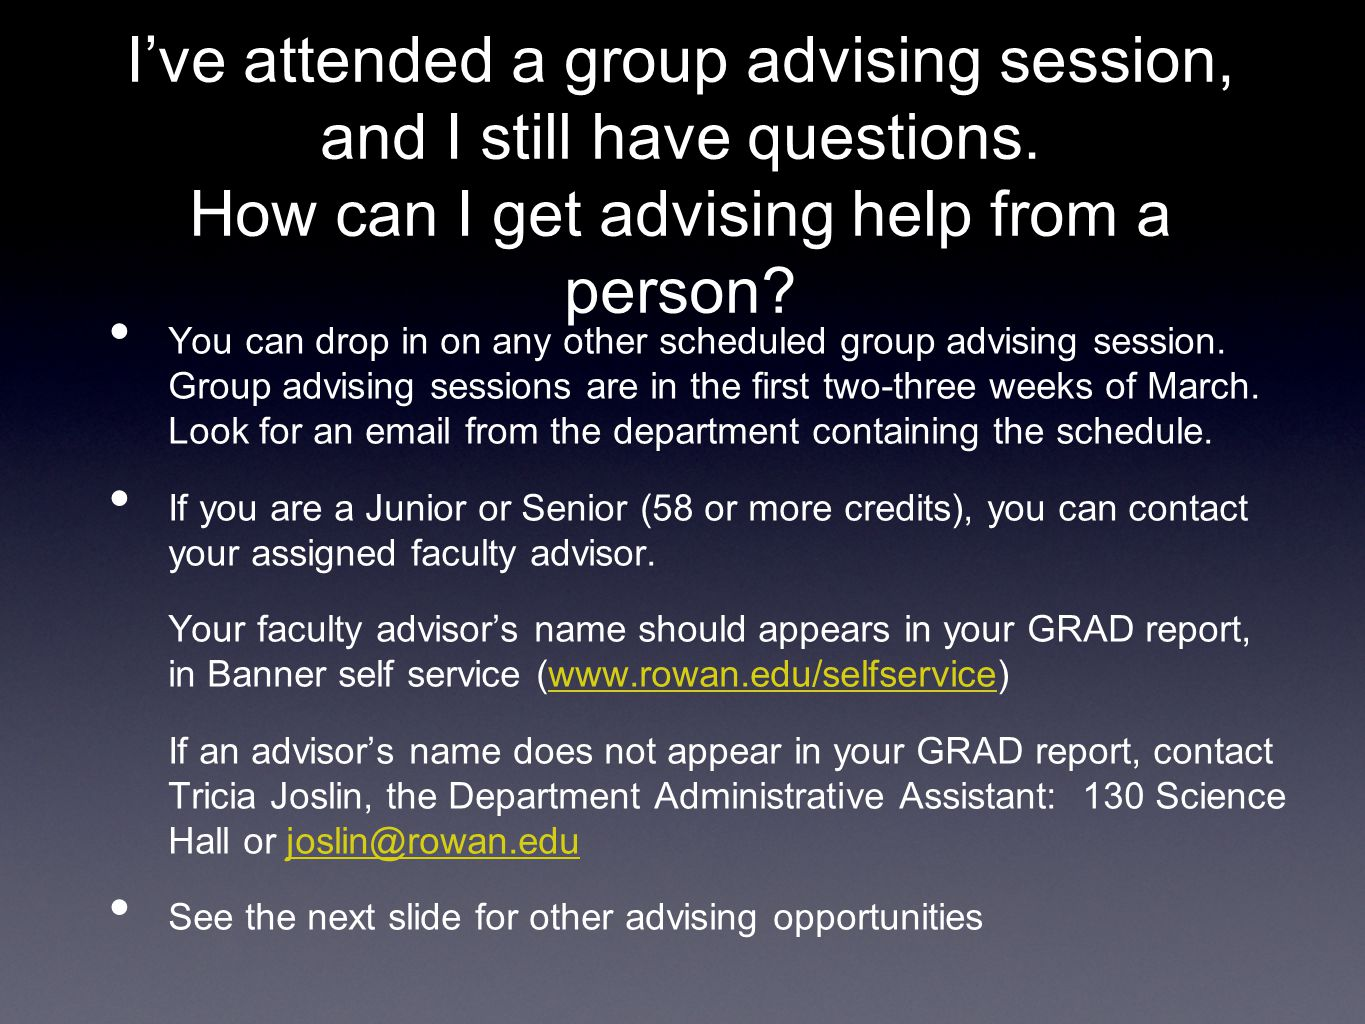 I've attended a group advising session, and I still have questions. How can I get advising help from a person? You can drop in on any other scheduled